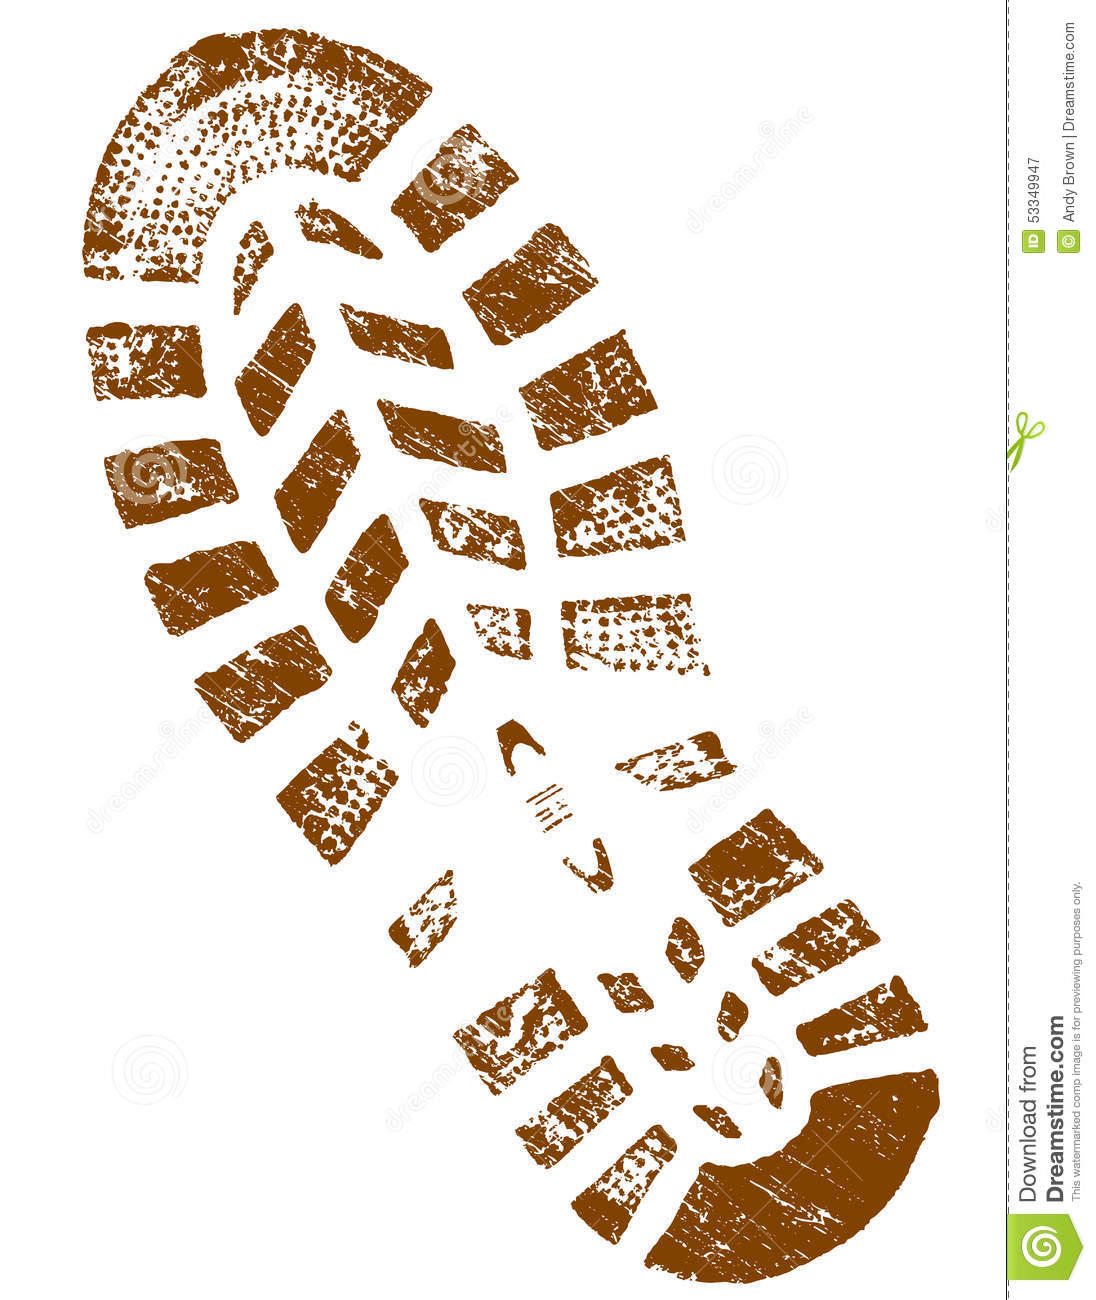 Dirty Brown ShoePrint Detailed Stock Illustration Image